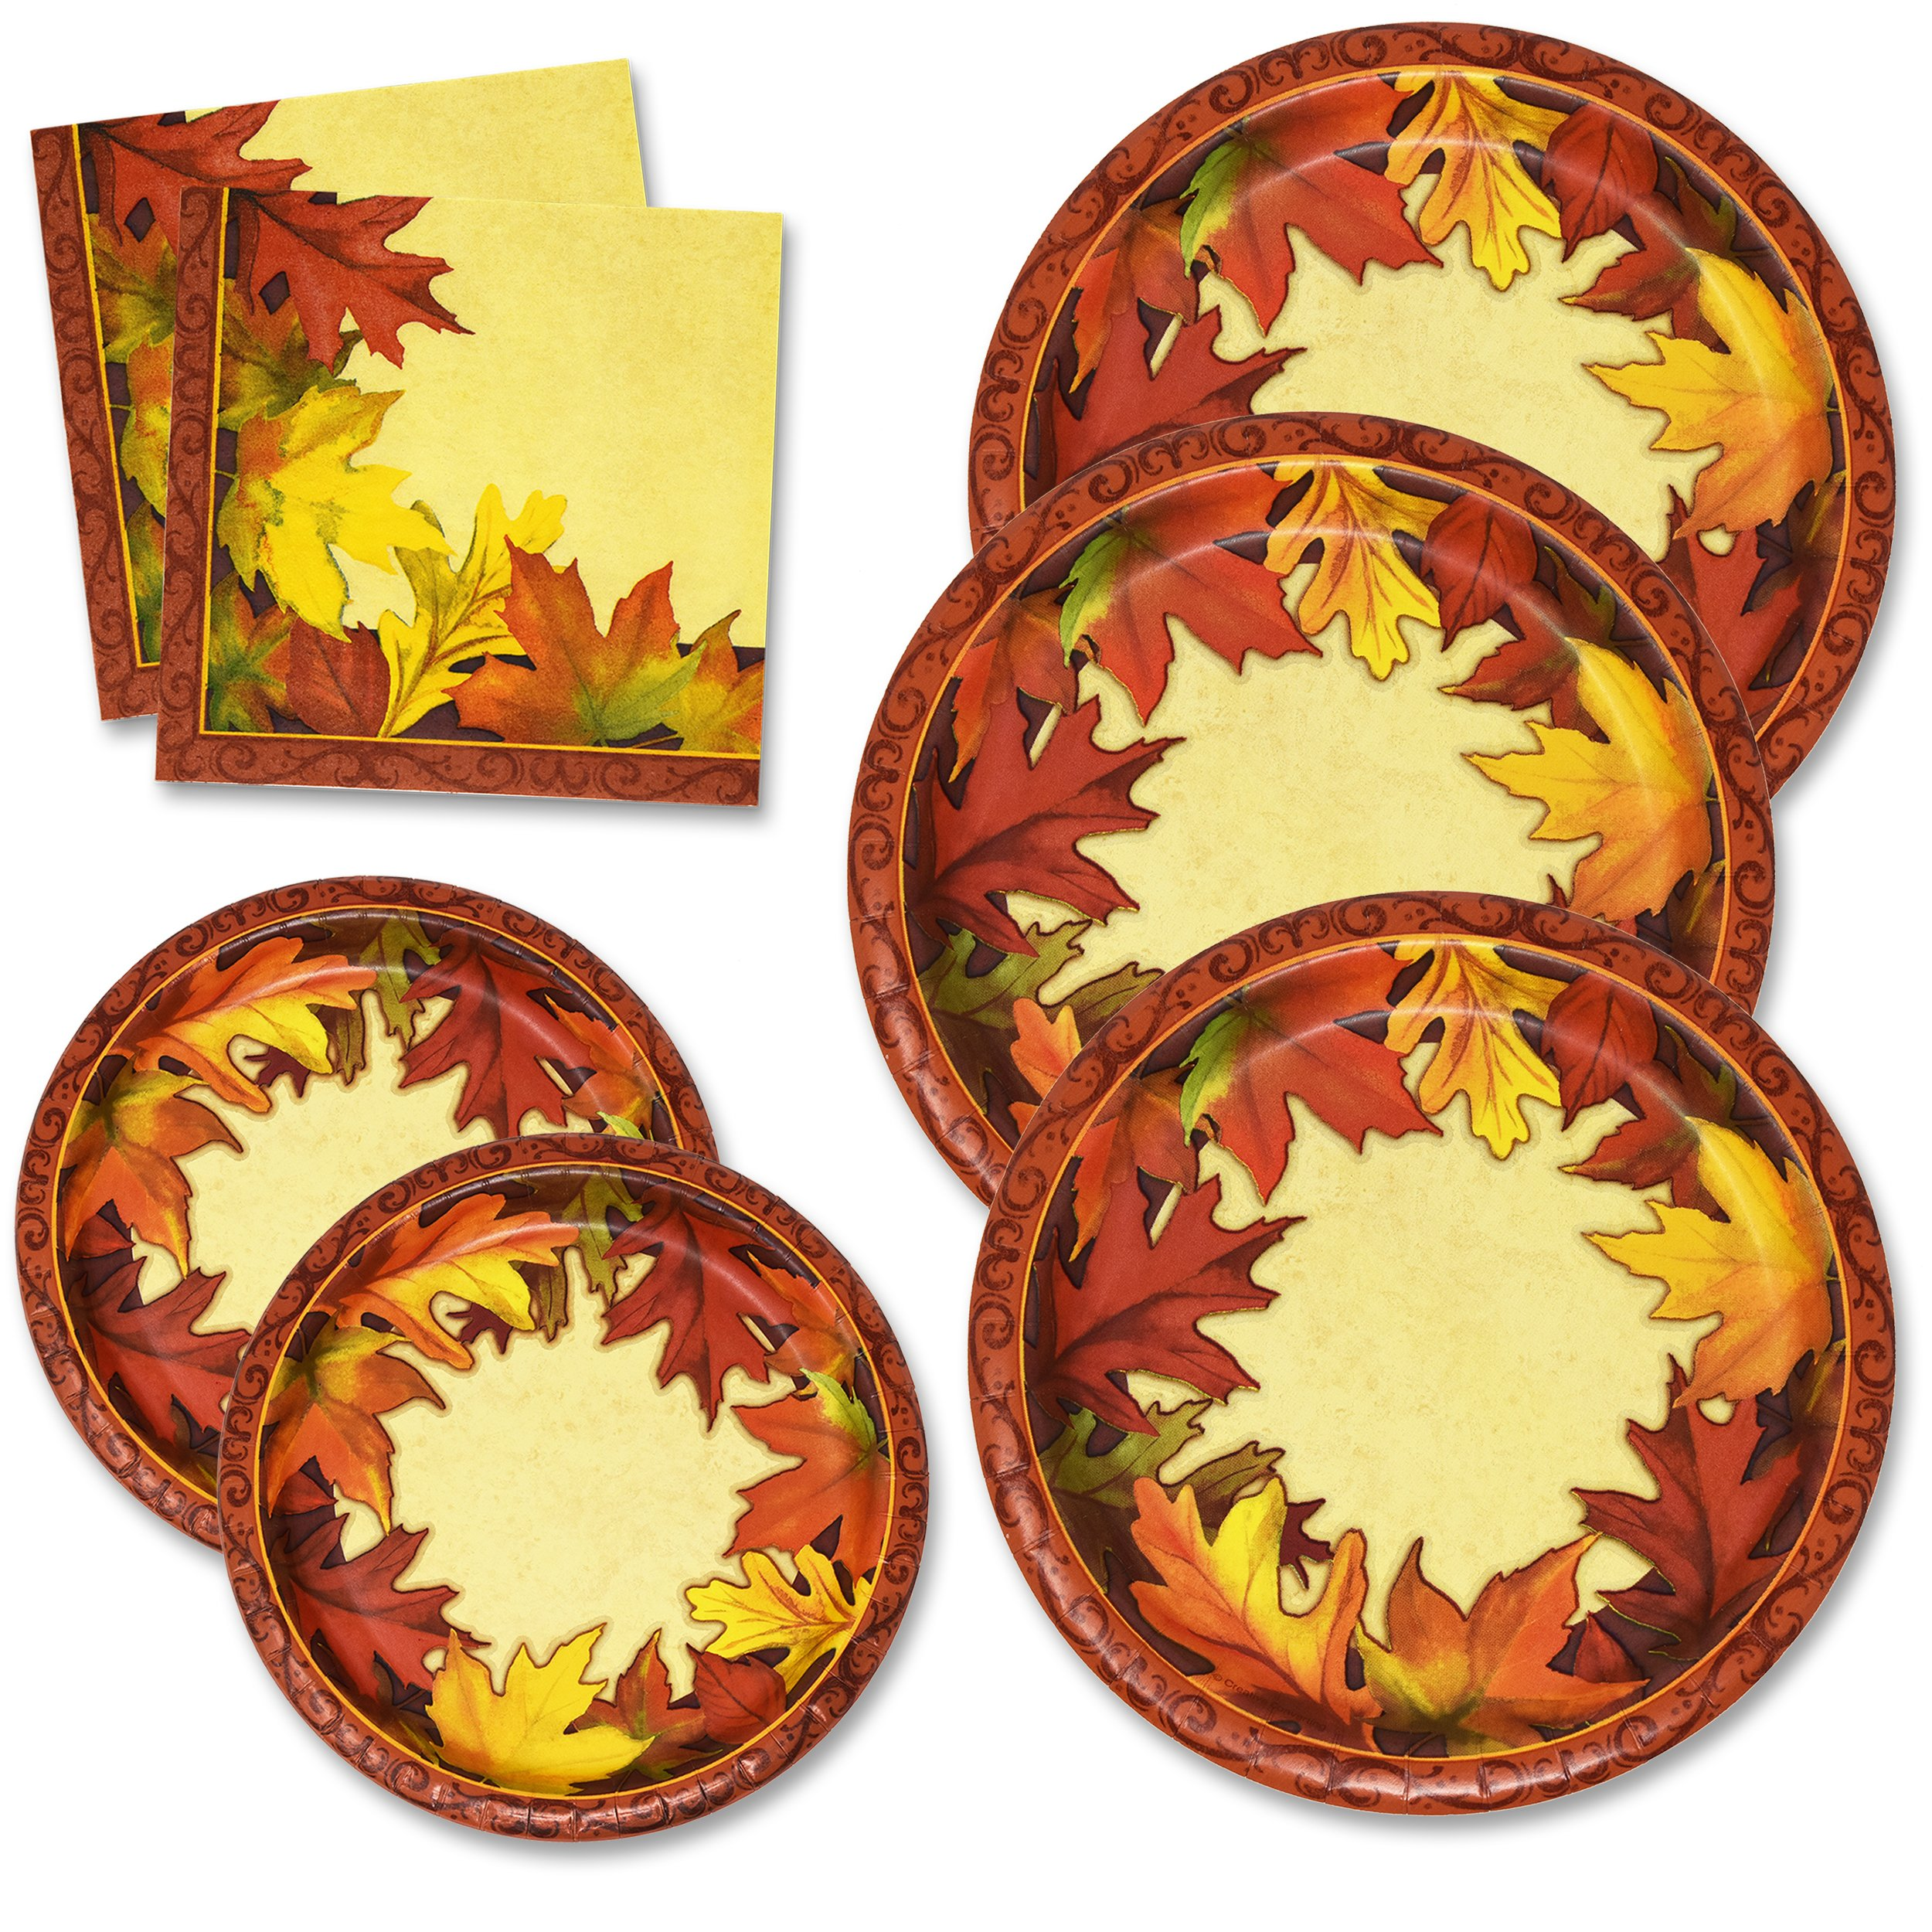 Thanksgiving Paper Plates and Napkins Set for 50 Guests includes 50 10'' Dinner Plates 50 6 5/8'' Dessert Plates 100 Luncheon Napkins for Fall Leaves Autumn Red Orange Tableware Party Kit Decorations by Gift Boutique